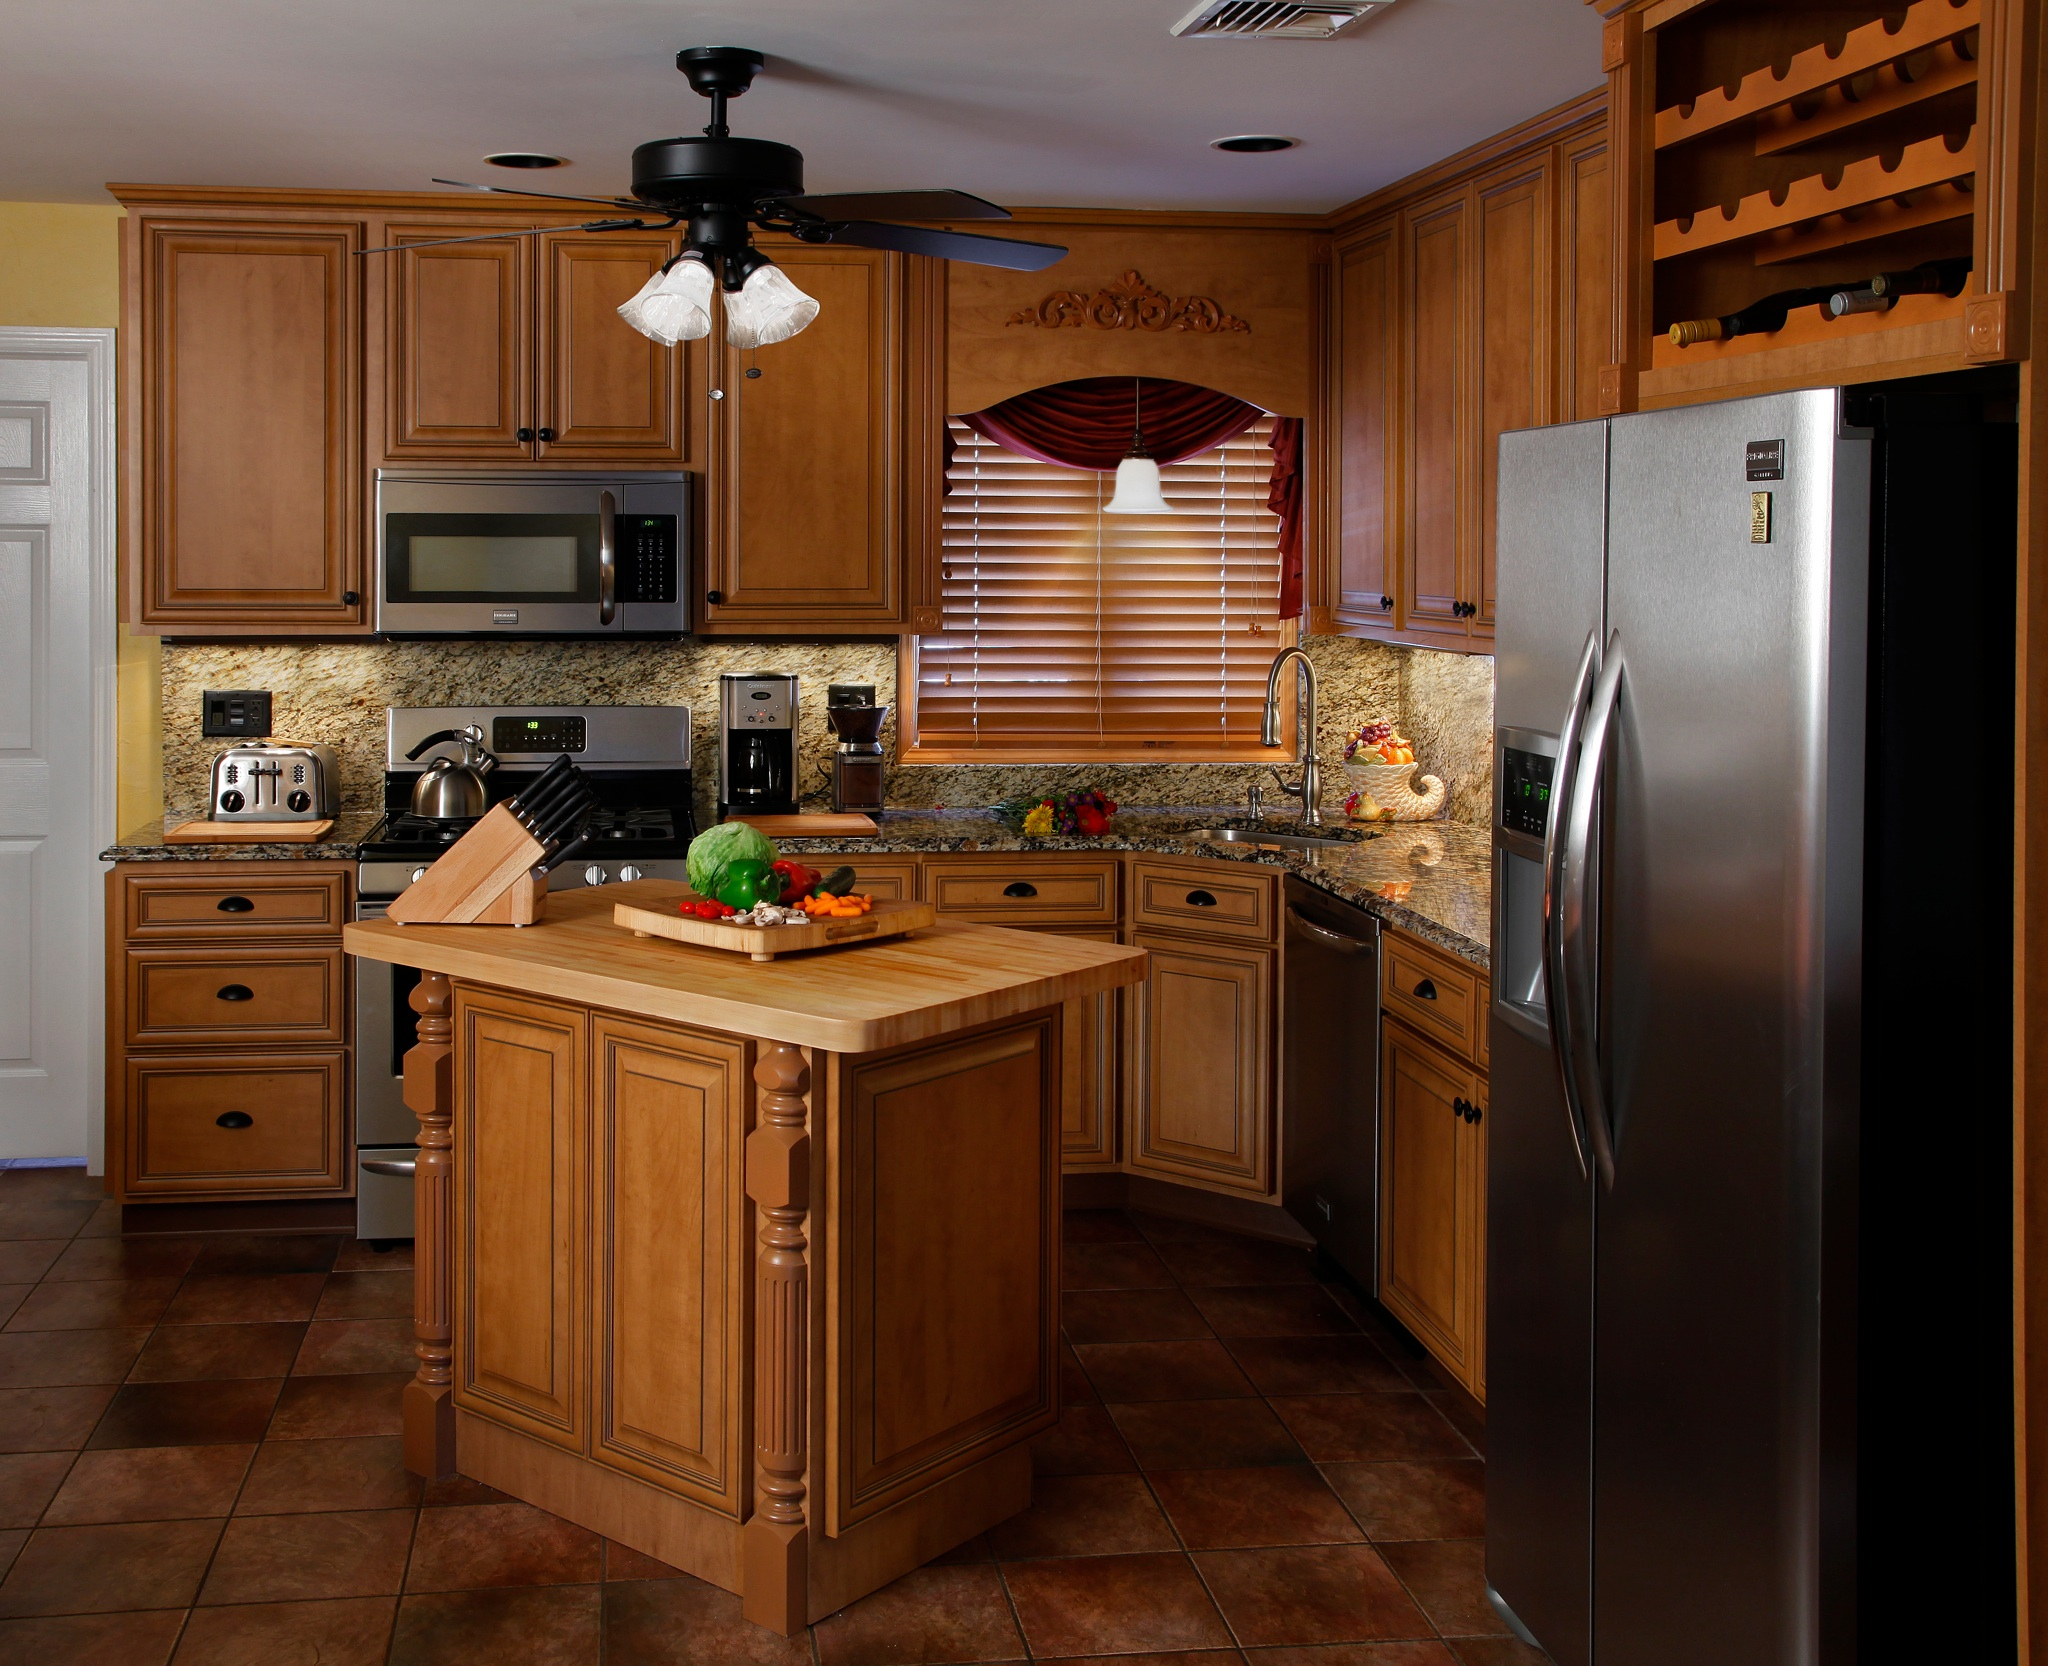 How To Clean Your Refaced Kitchen Cabinets